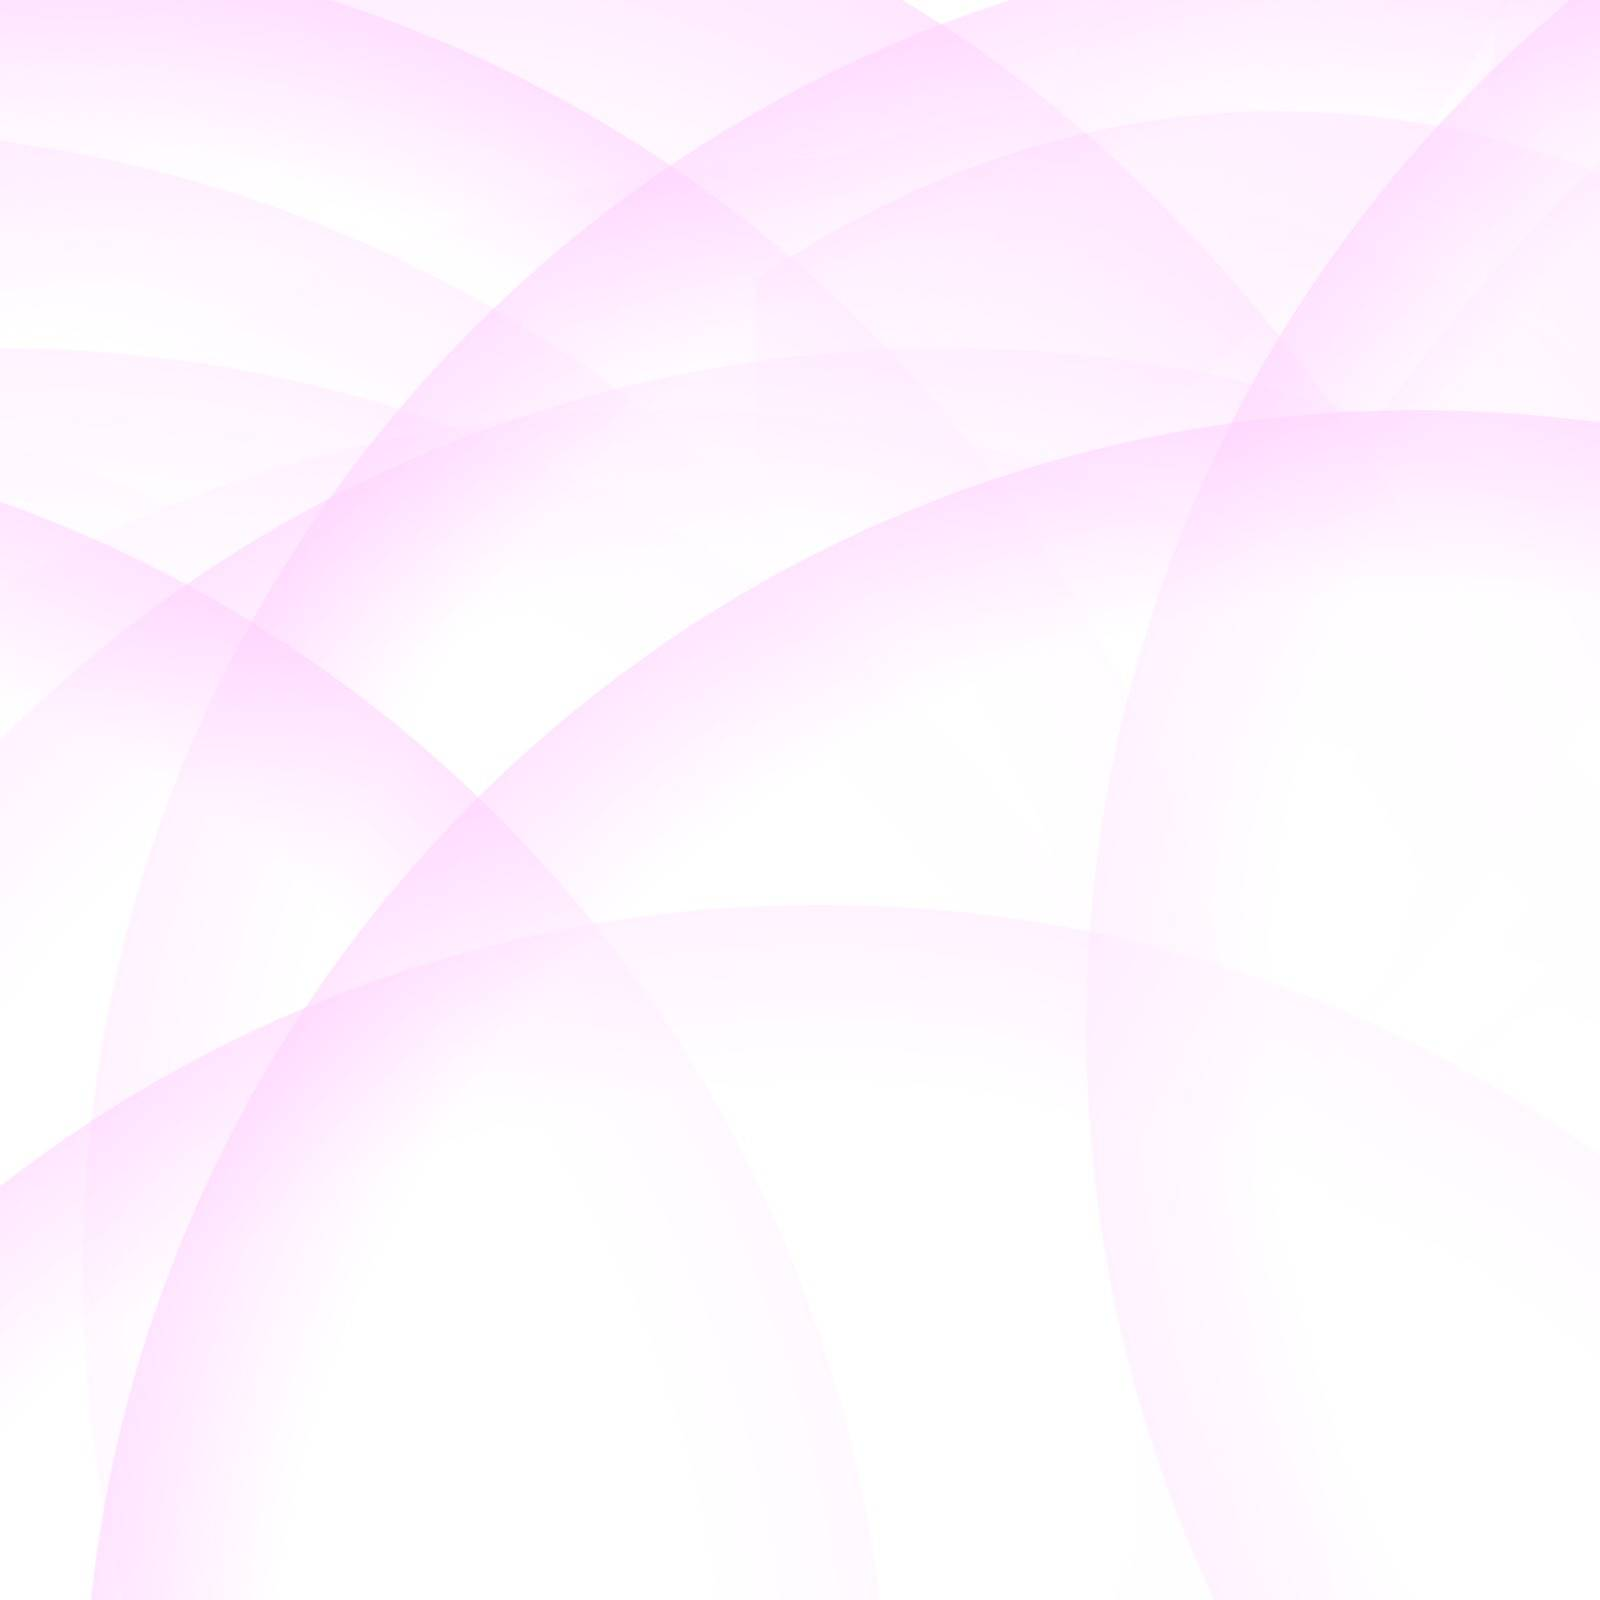 Abstract Pink Circle Background. Pink Light Pattern.